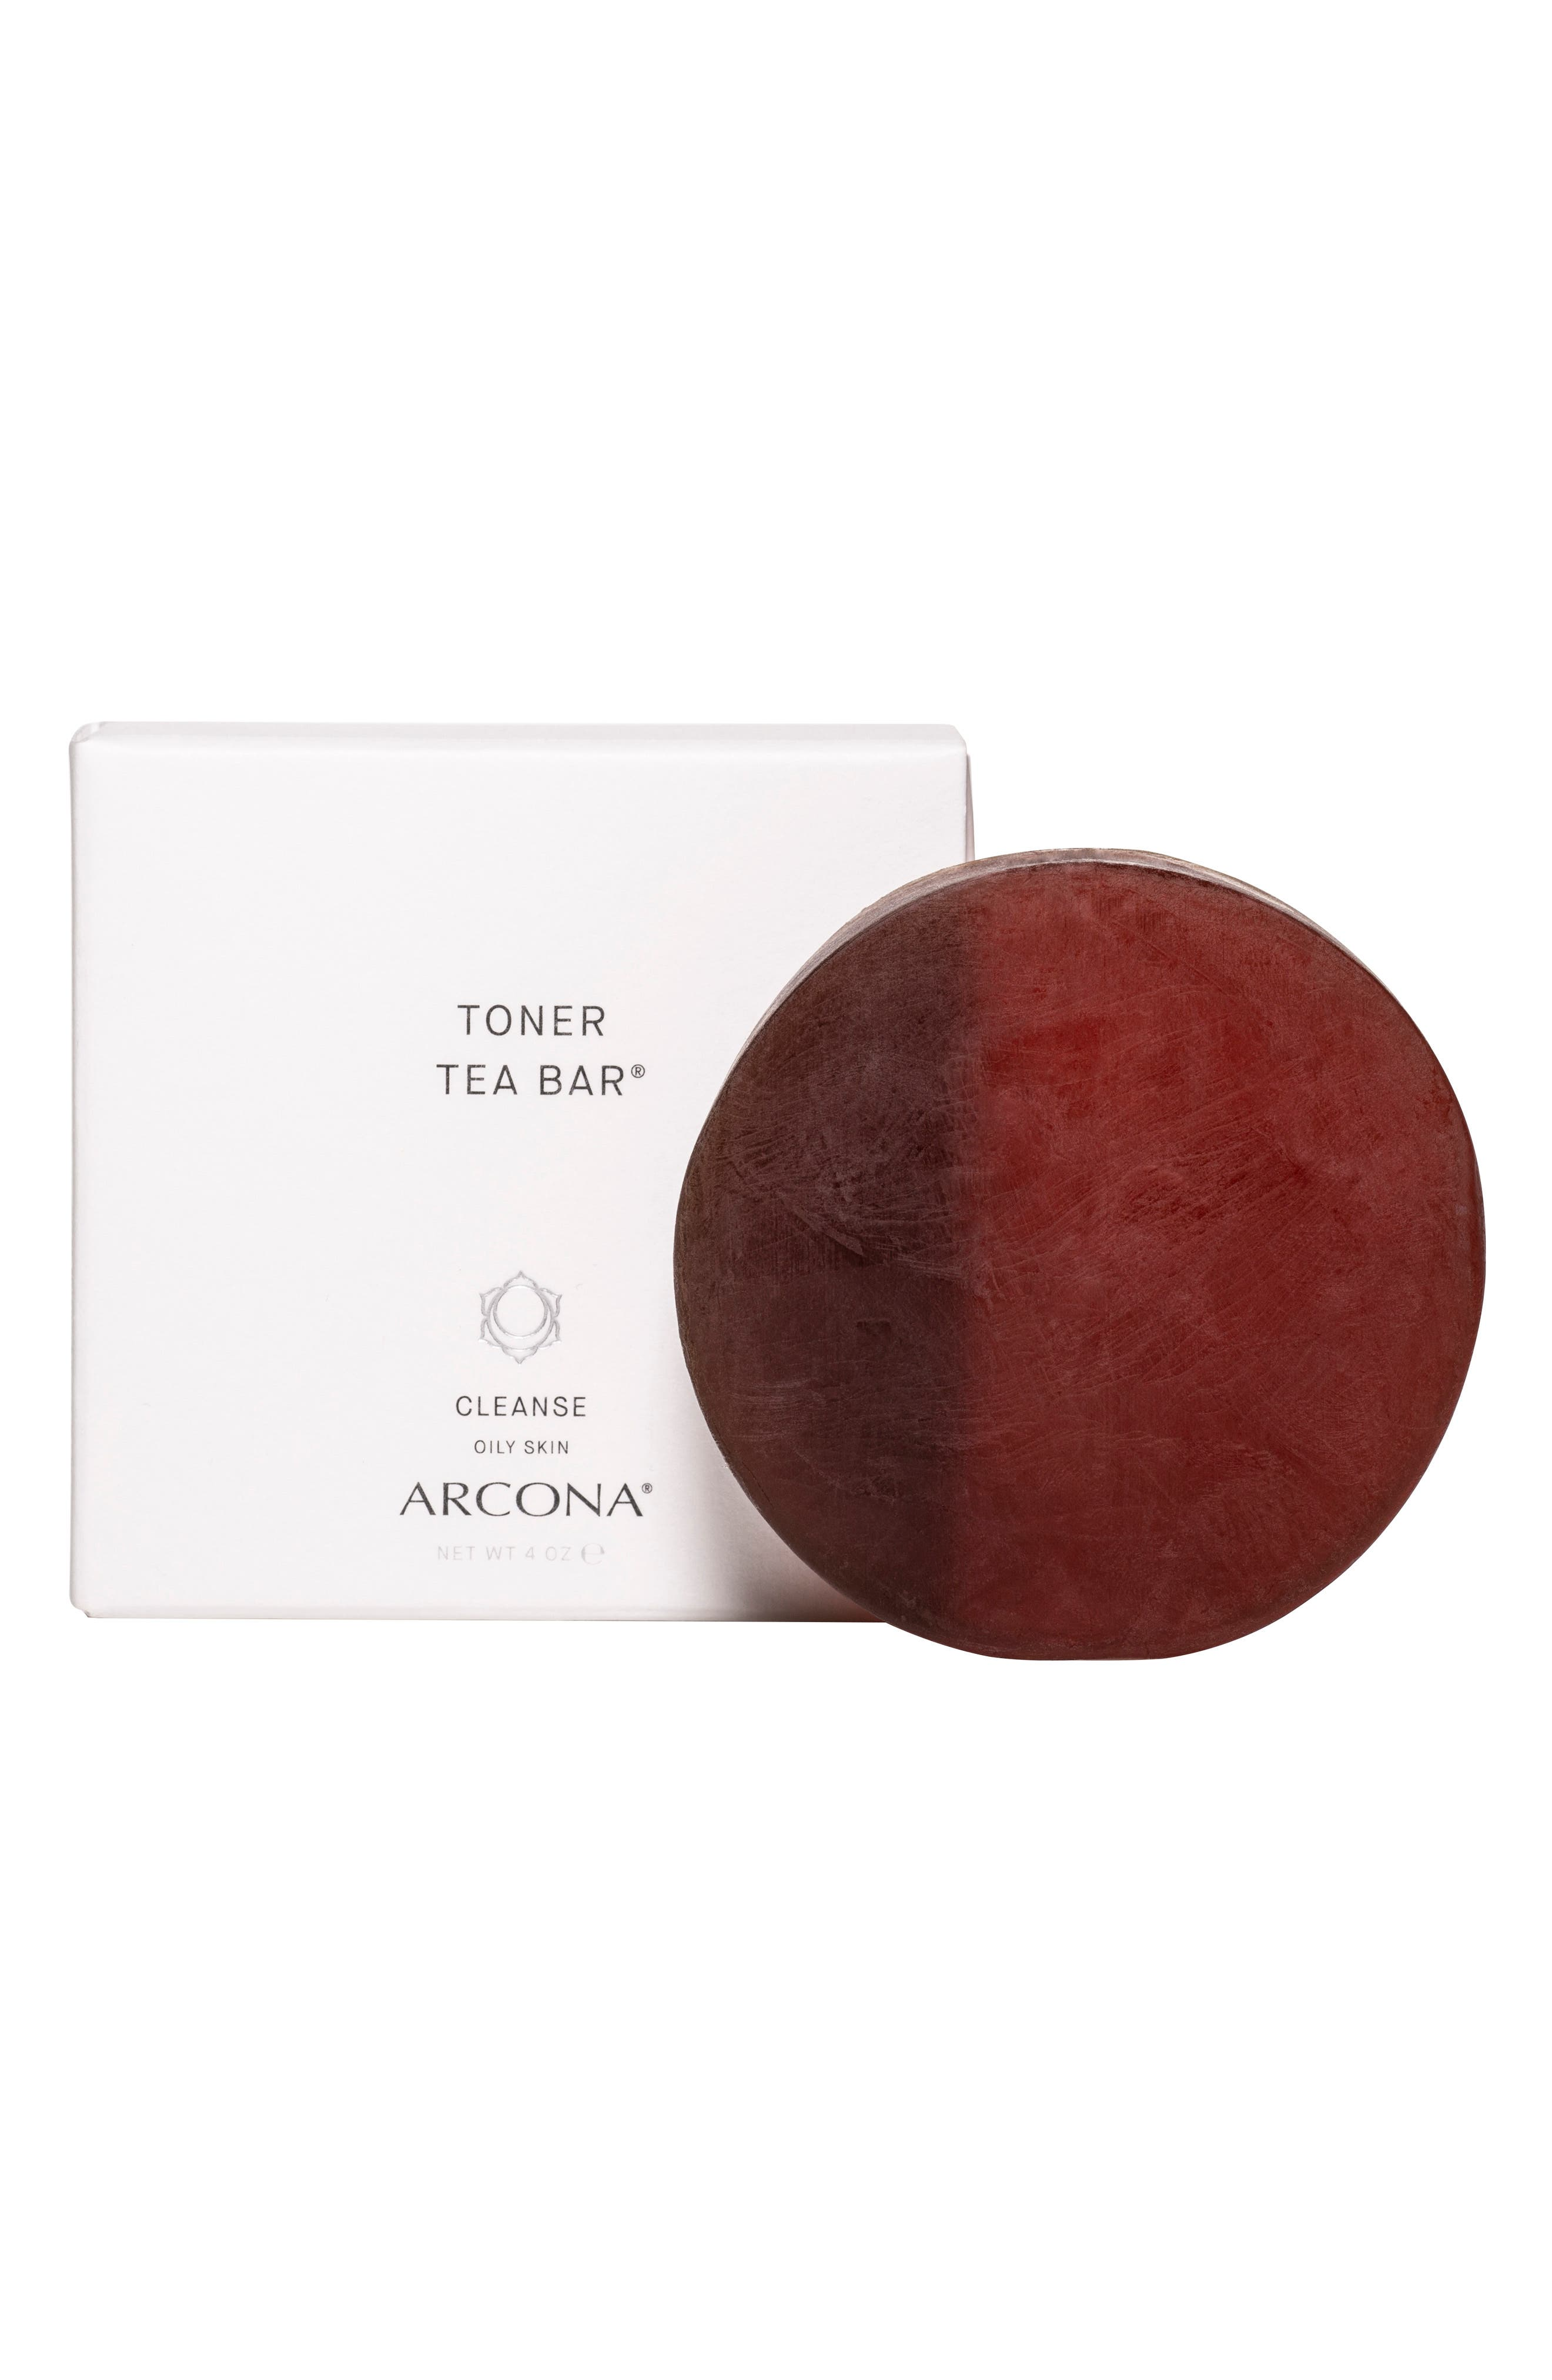 Toner Tea Bar Facial Cleanser For Combination To Oily Skin